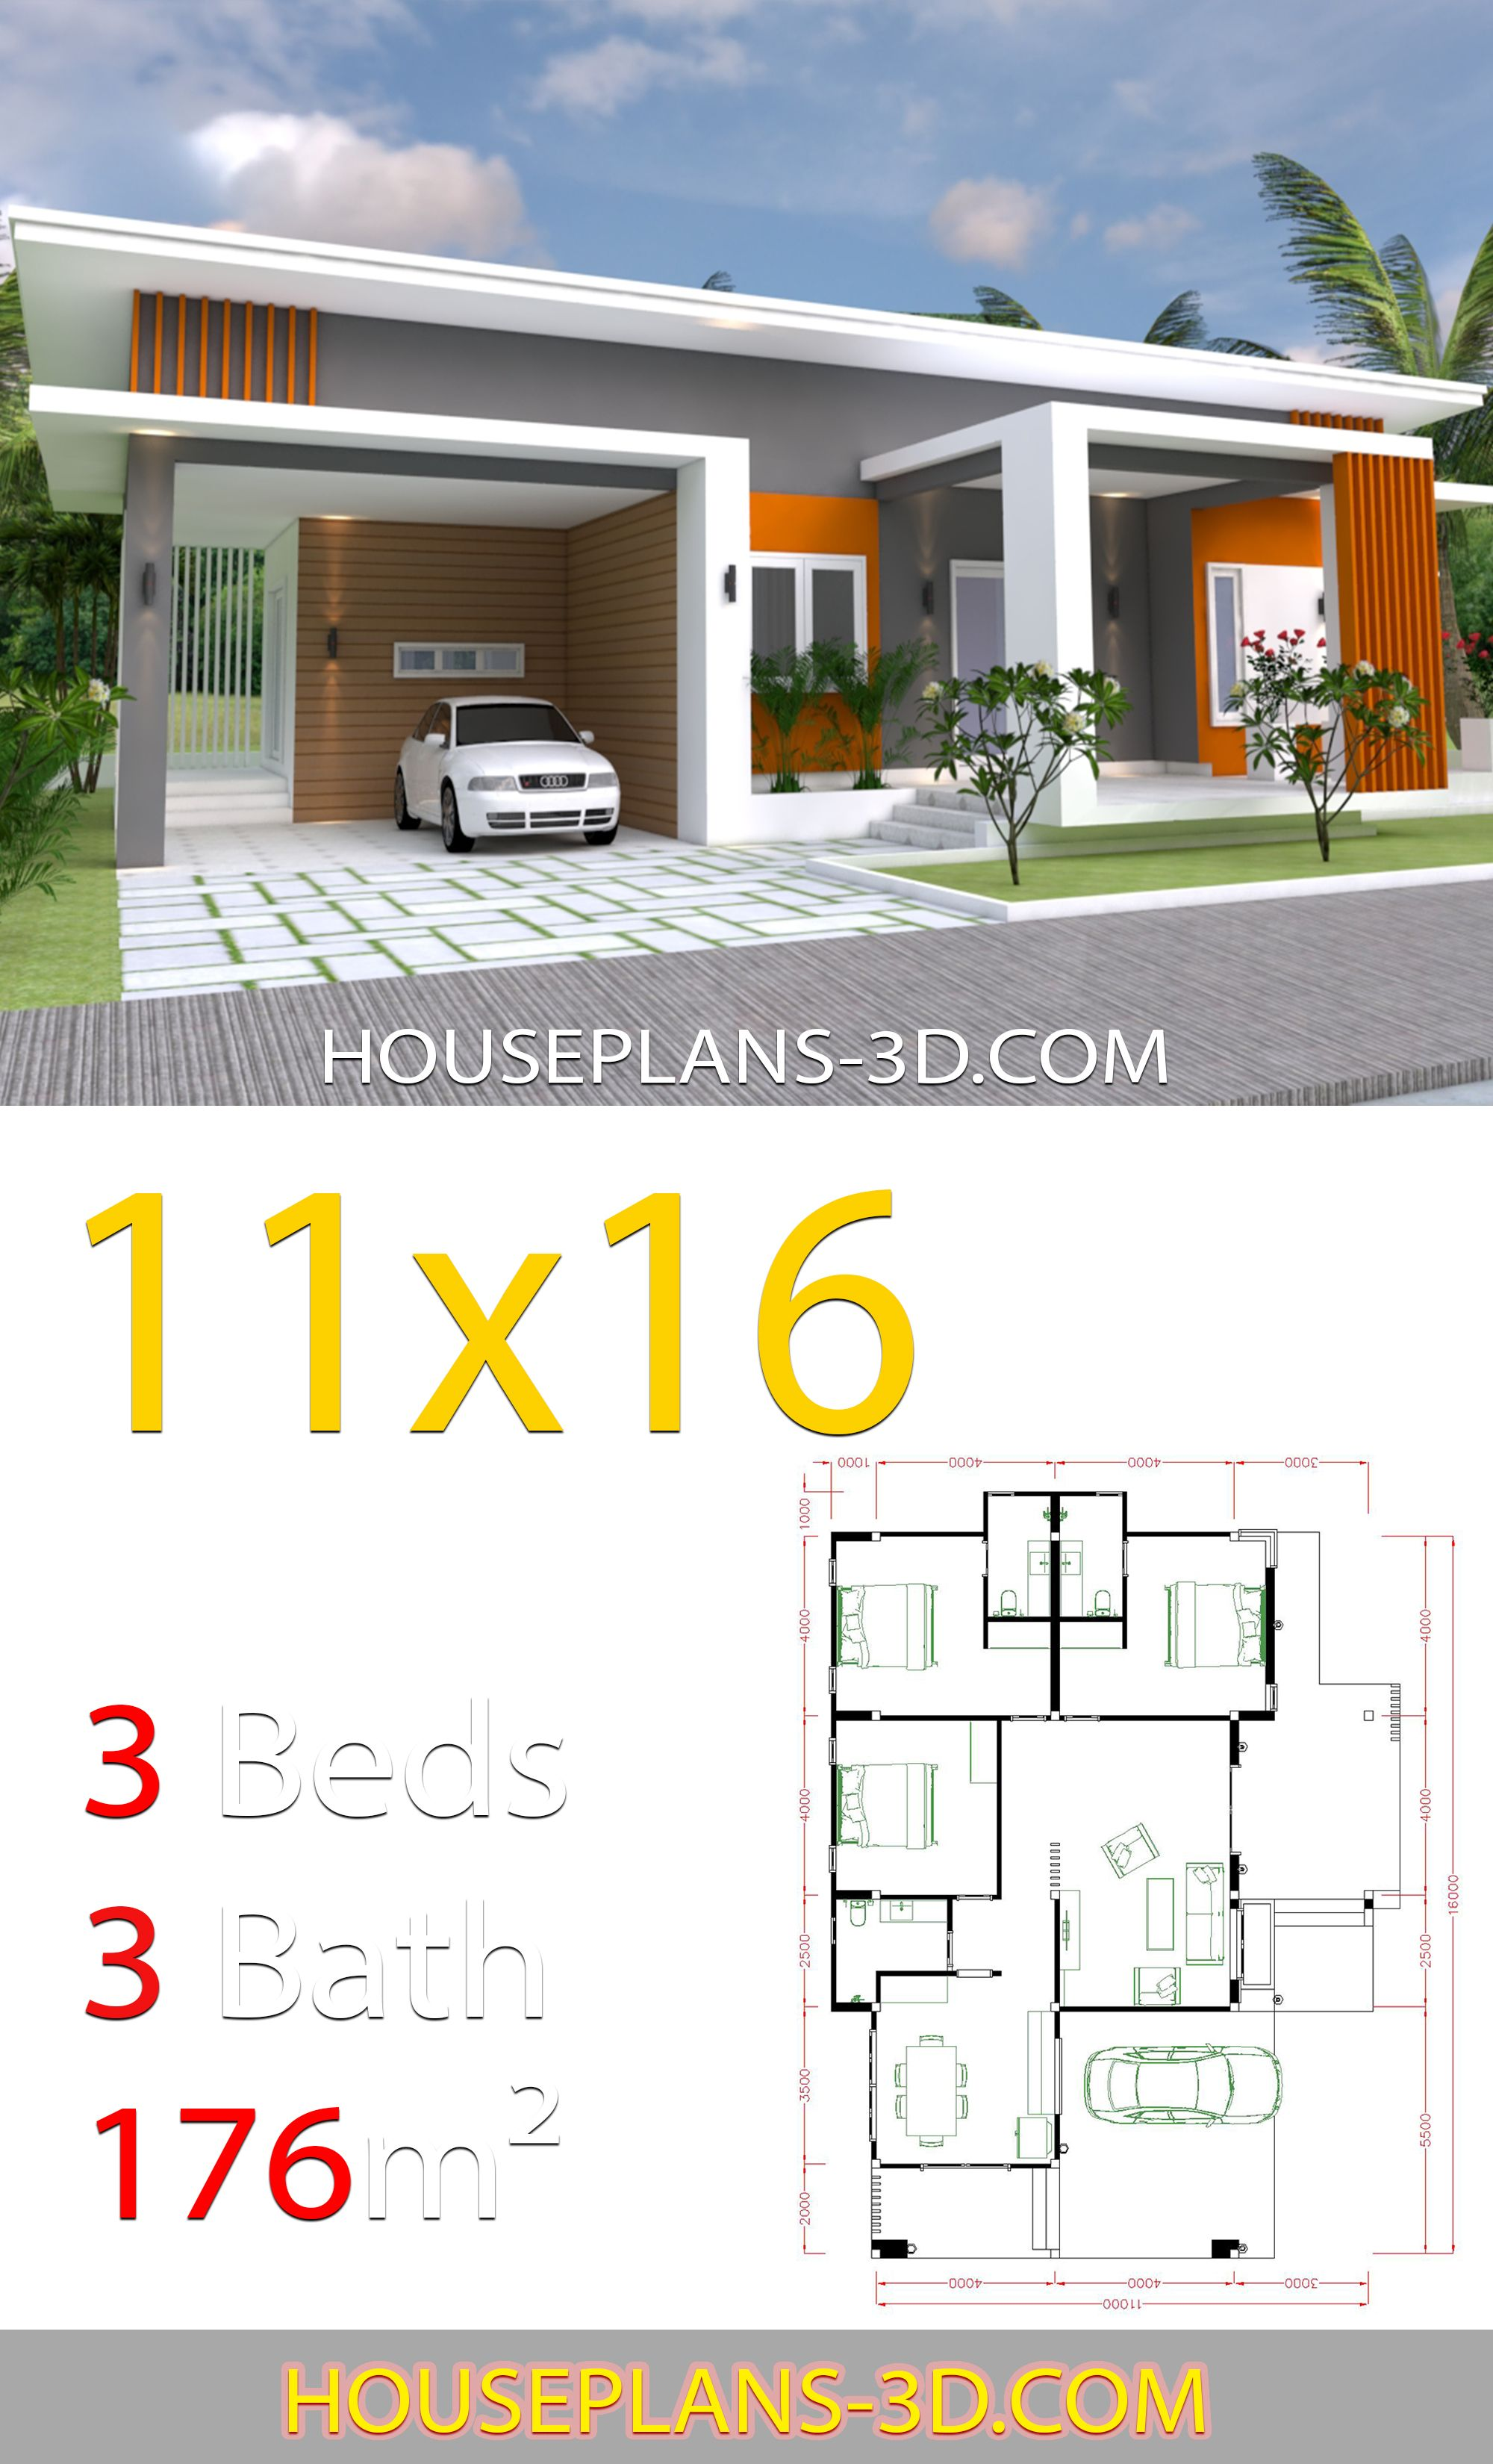 Home Design 11x16 With 3 Bedrooms Slop Roof House Plans 3d In 2020 Diy House Plans House Plans House Construction Plan